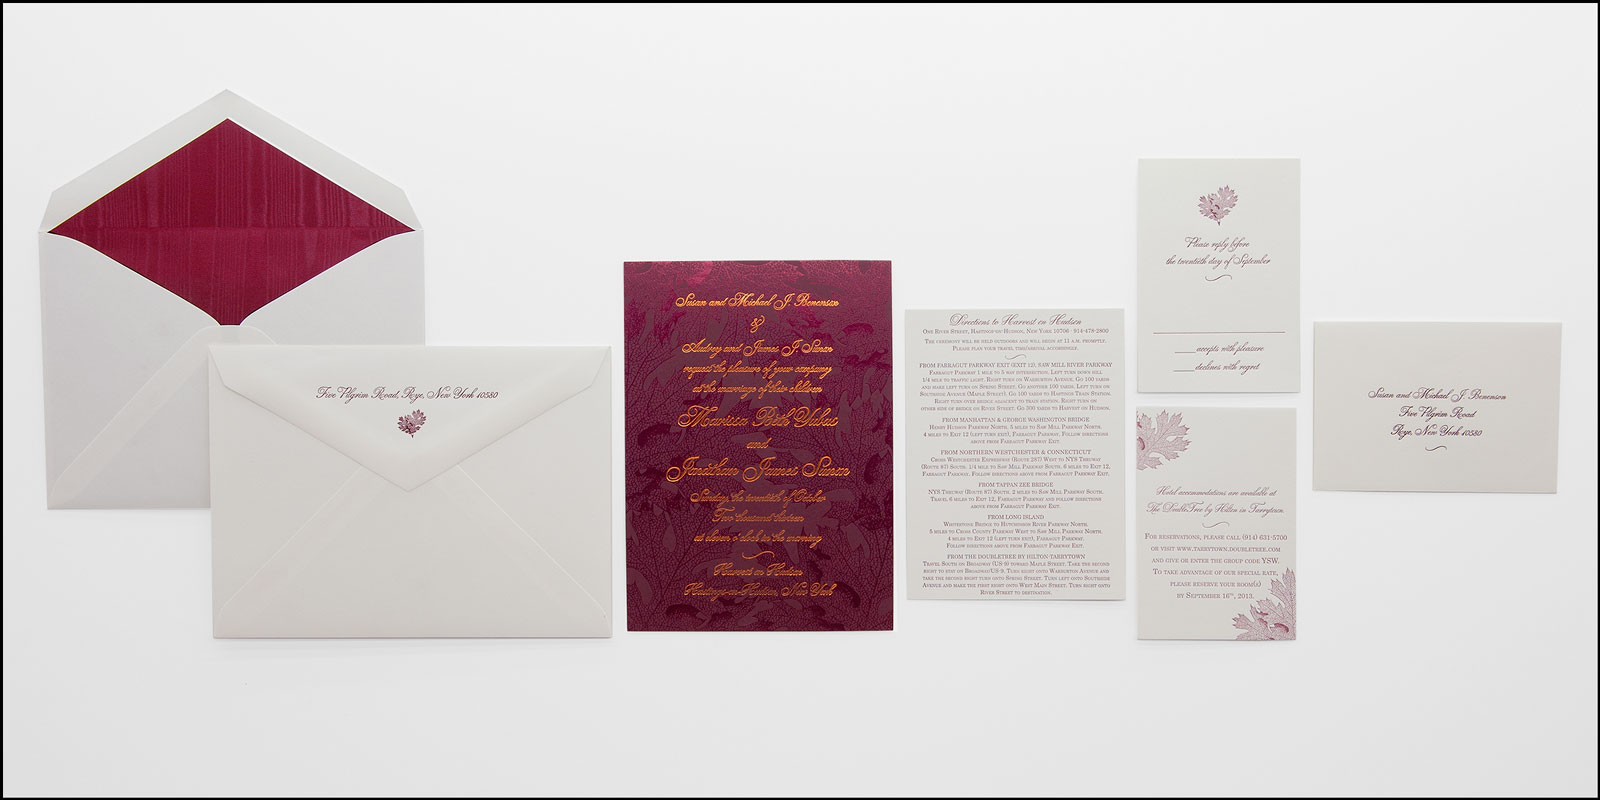 Marissa-Jonathan-Invitation-1